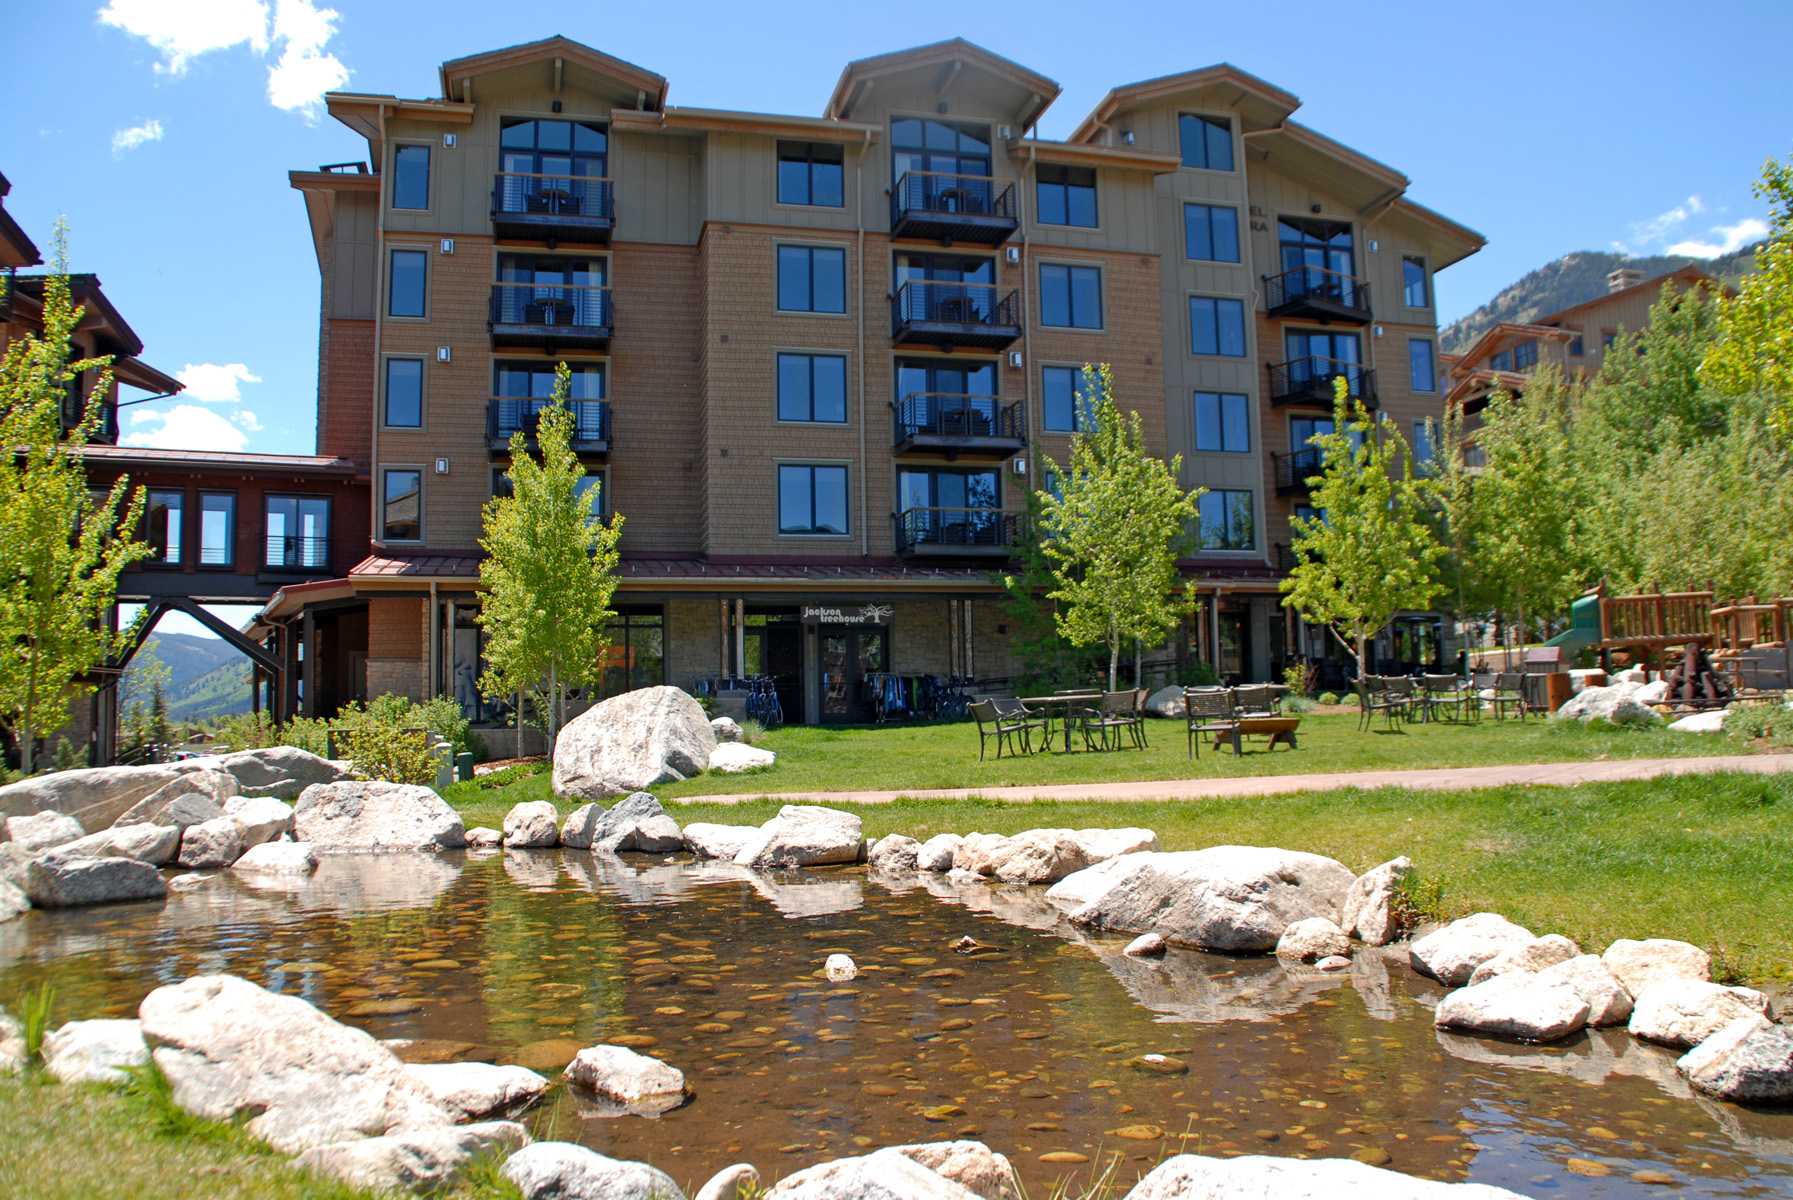 Condominio por un Venta en Hotel Terra ski-in/ski-out condo 3335 W. Village Road Unit 223 Teton Village, Wyoming, 83025 Jackson Hole, Estados Unidos